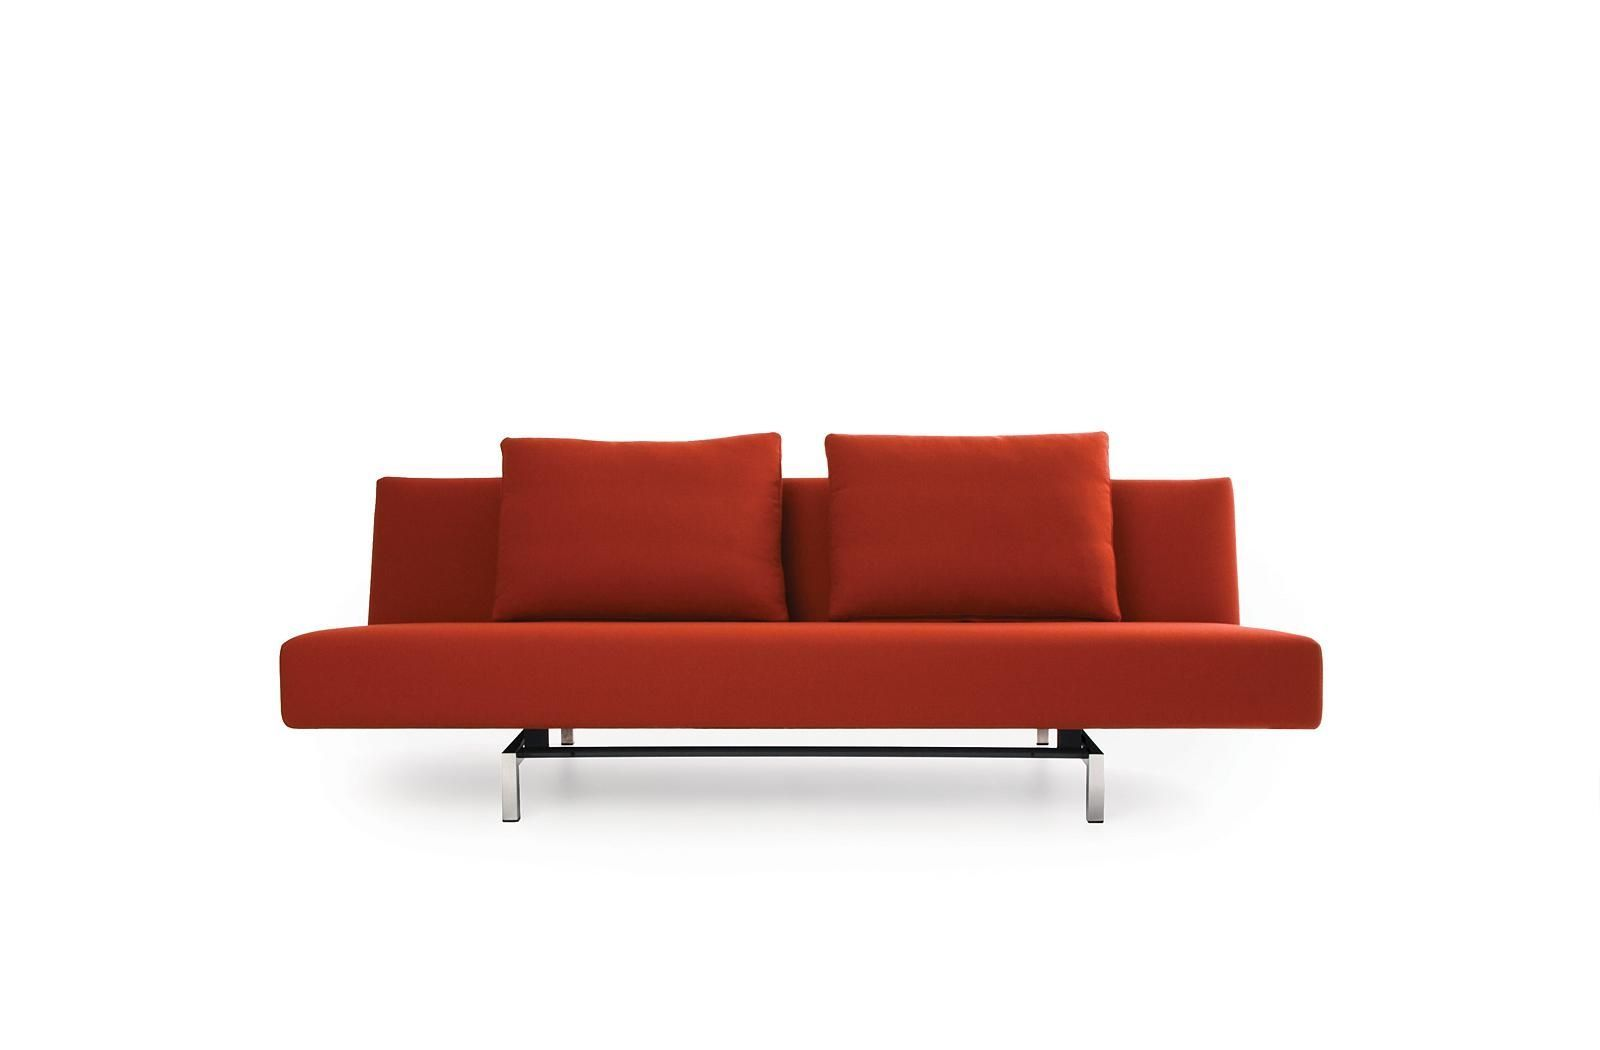 The features of the best contemporary sofa bed for your modern